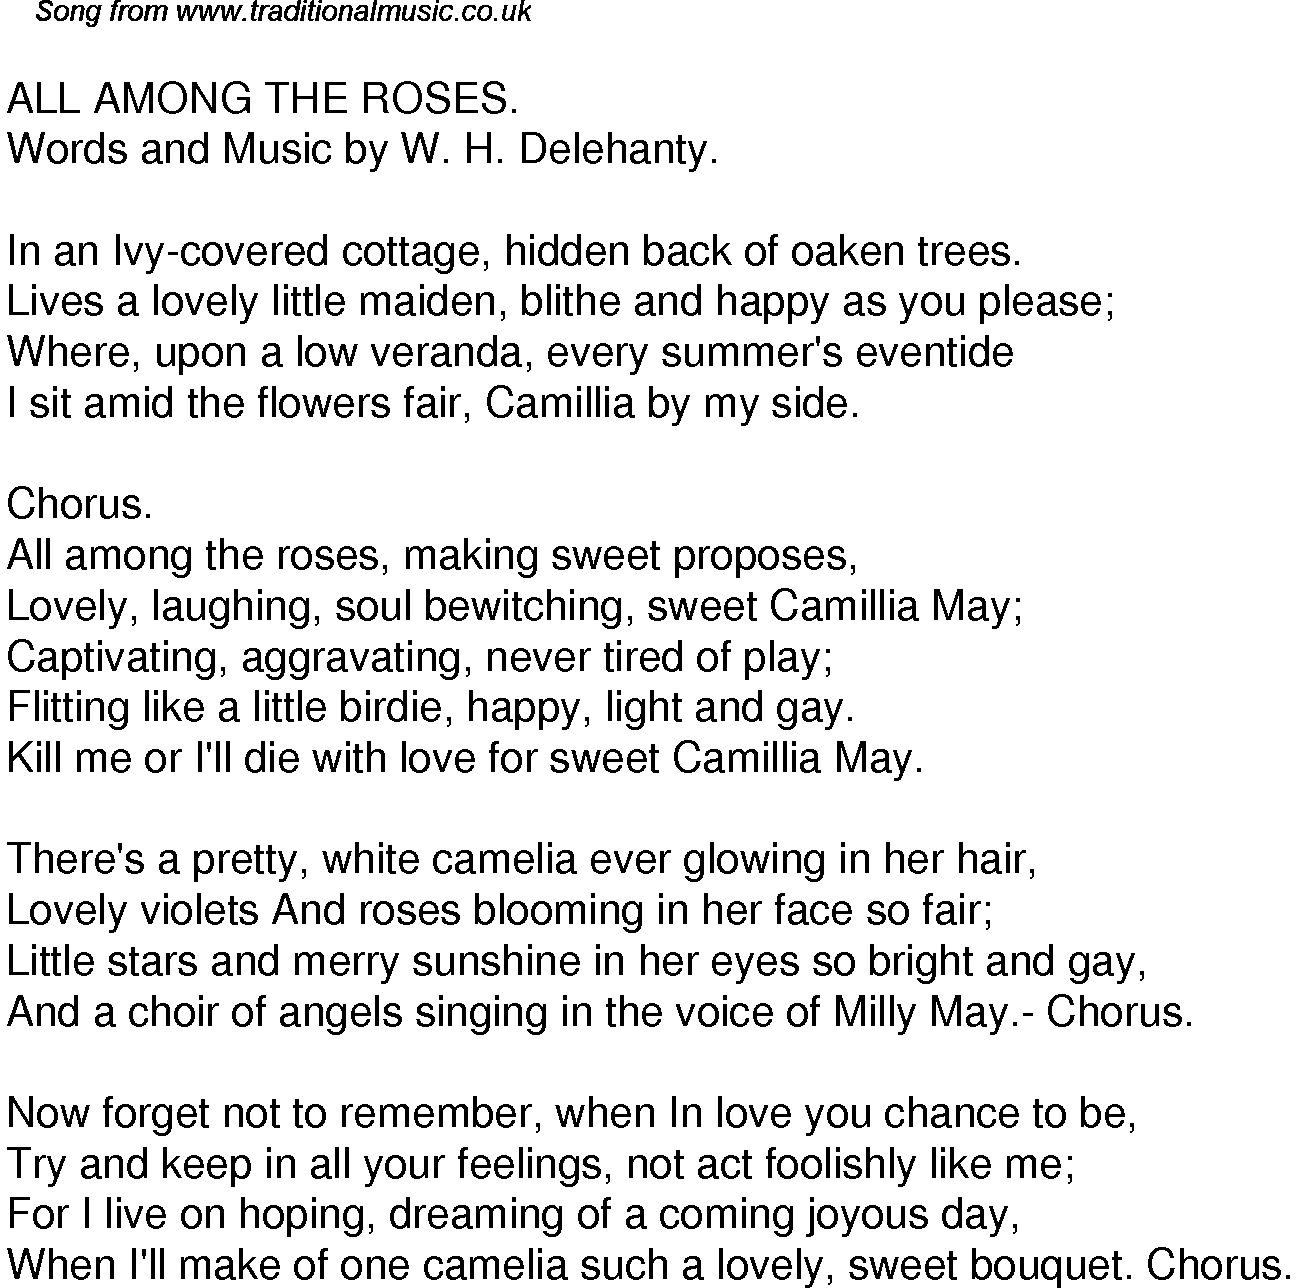 Old Time Song Lyrics for 39 All Among The Roses